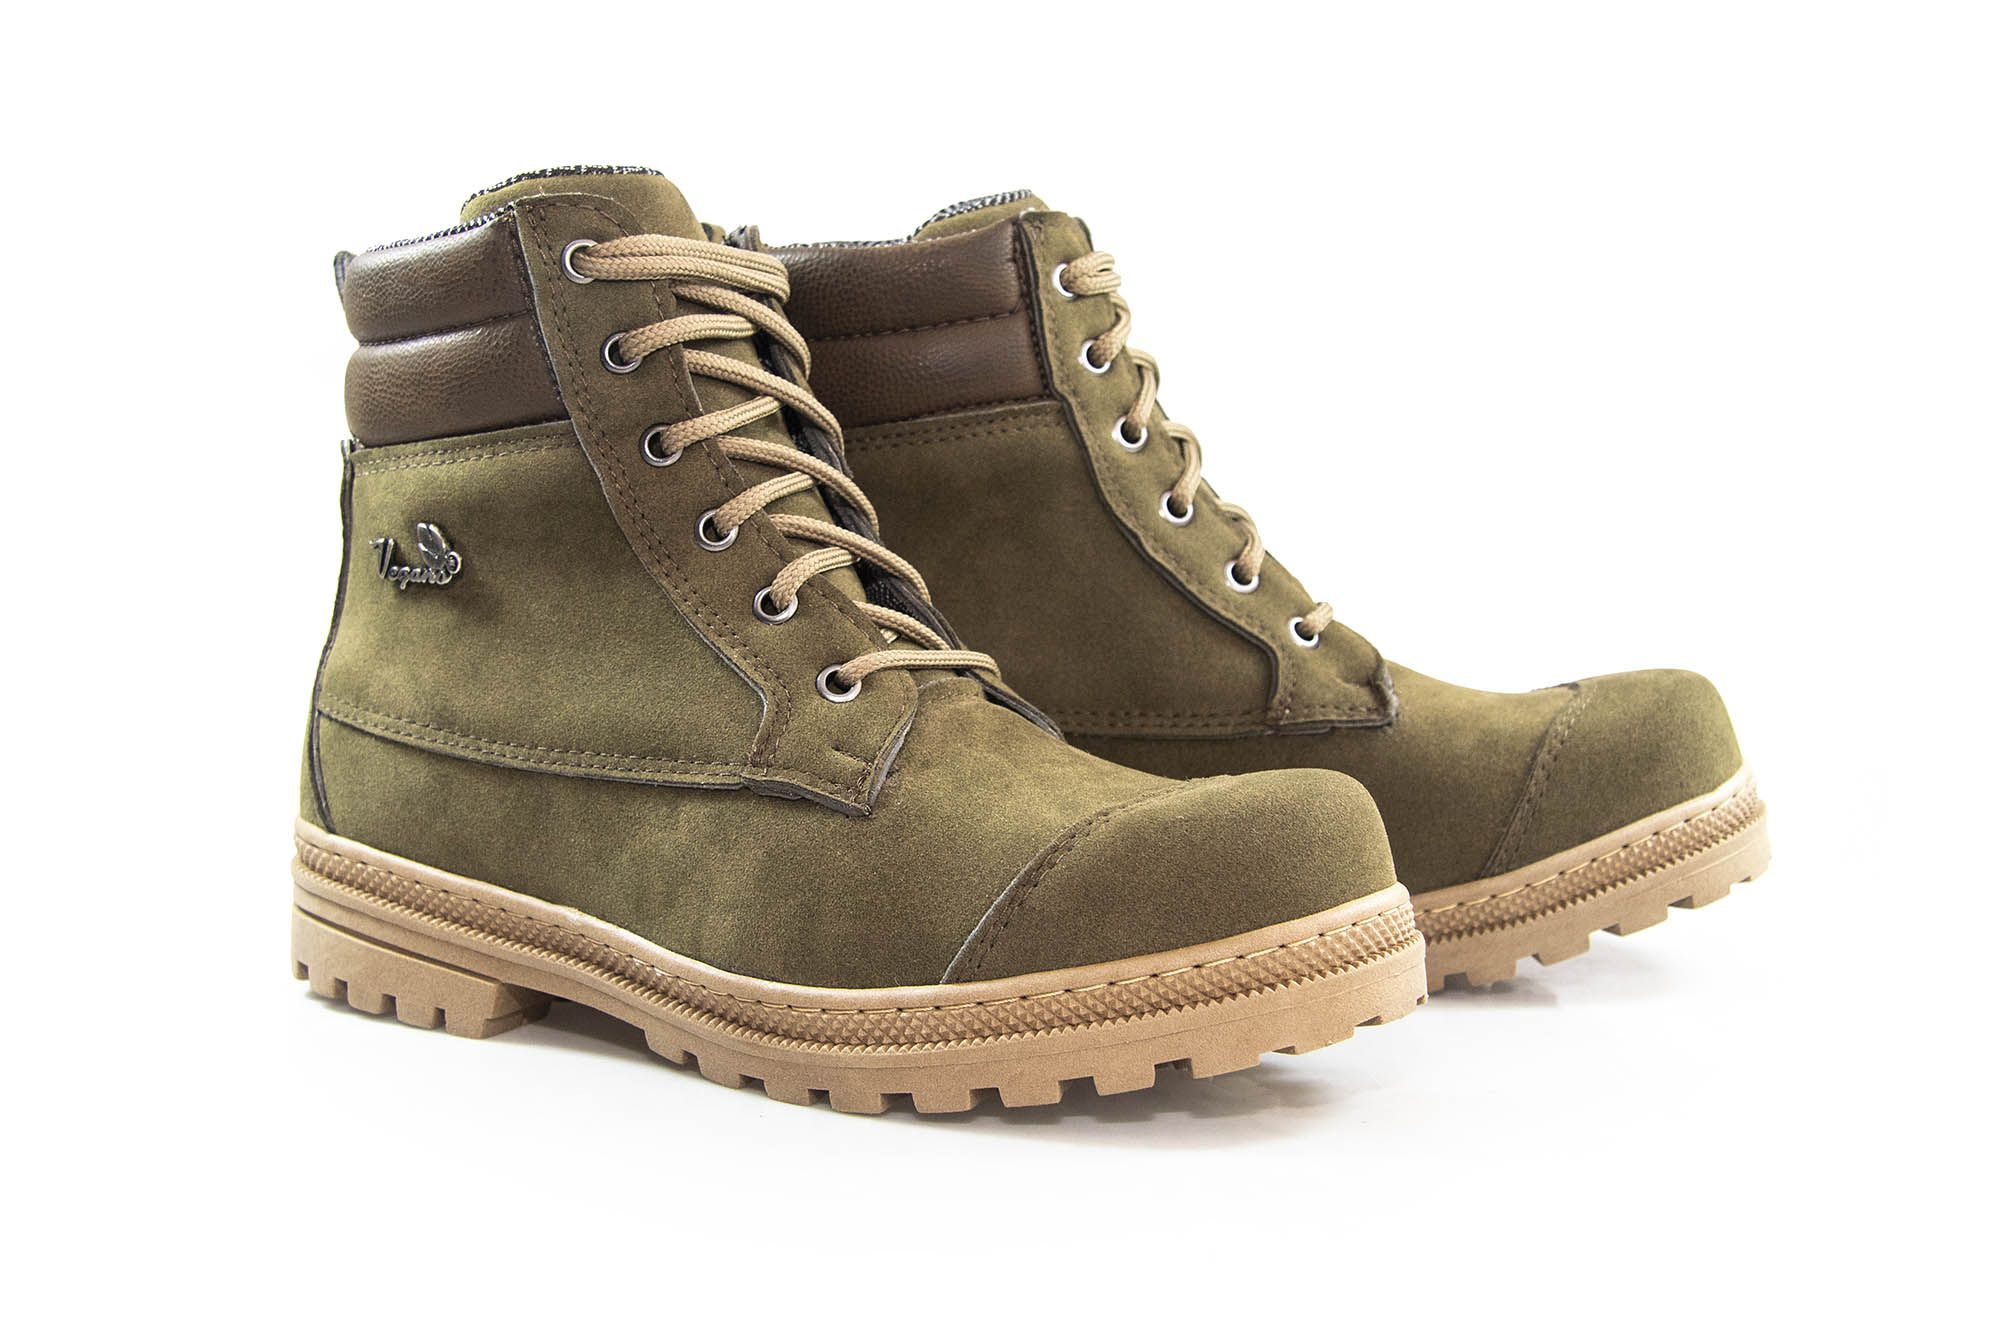 Bota Vegano Shoes Naturale Soft Aspargo